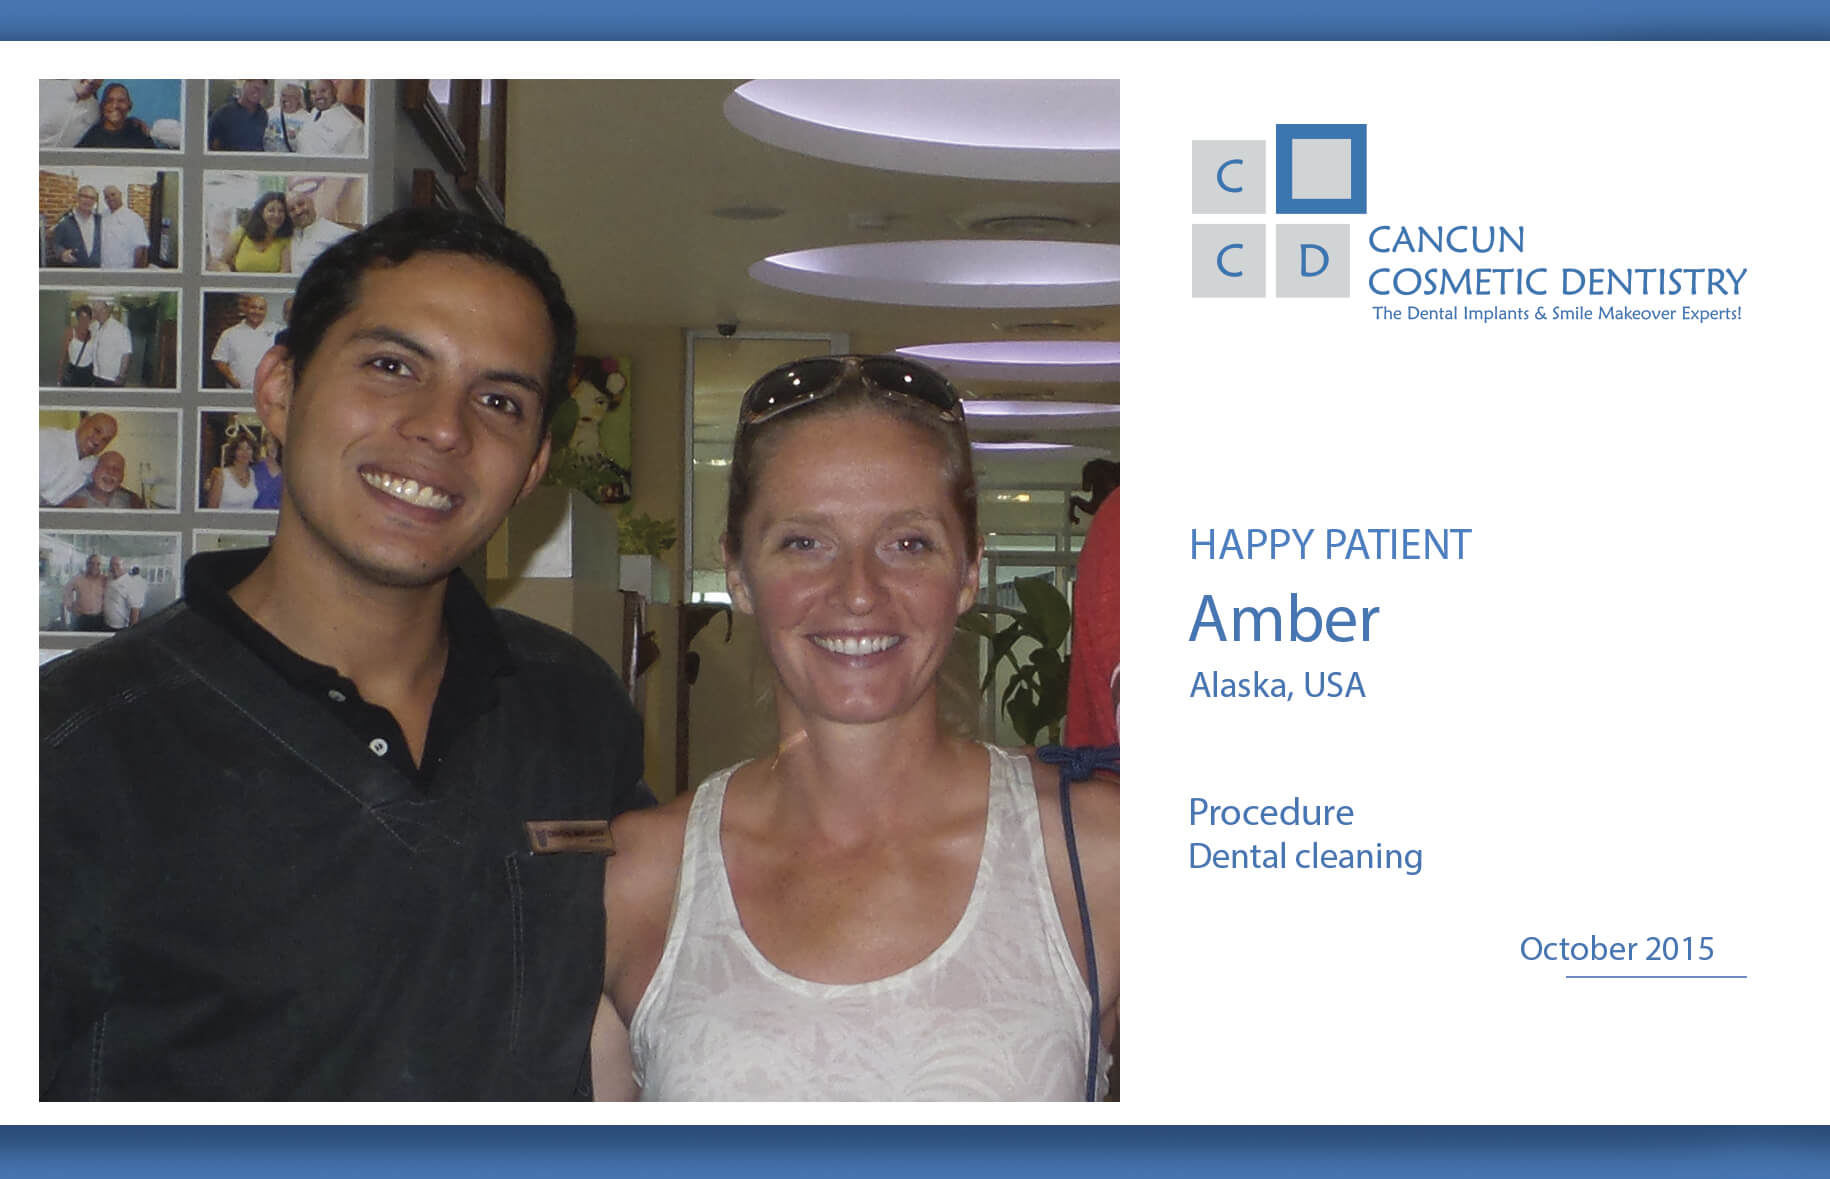 Get your dental cleaning on your vacation in Cancun!